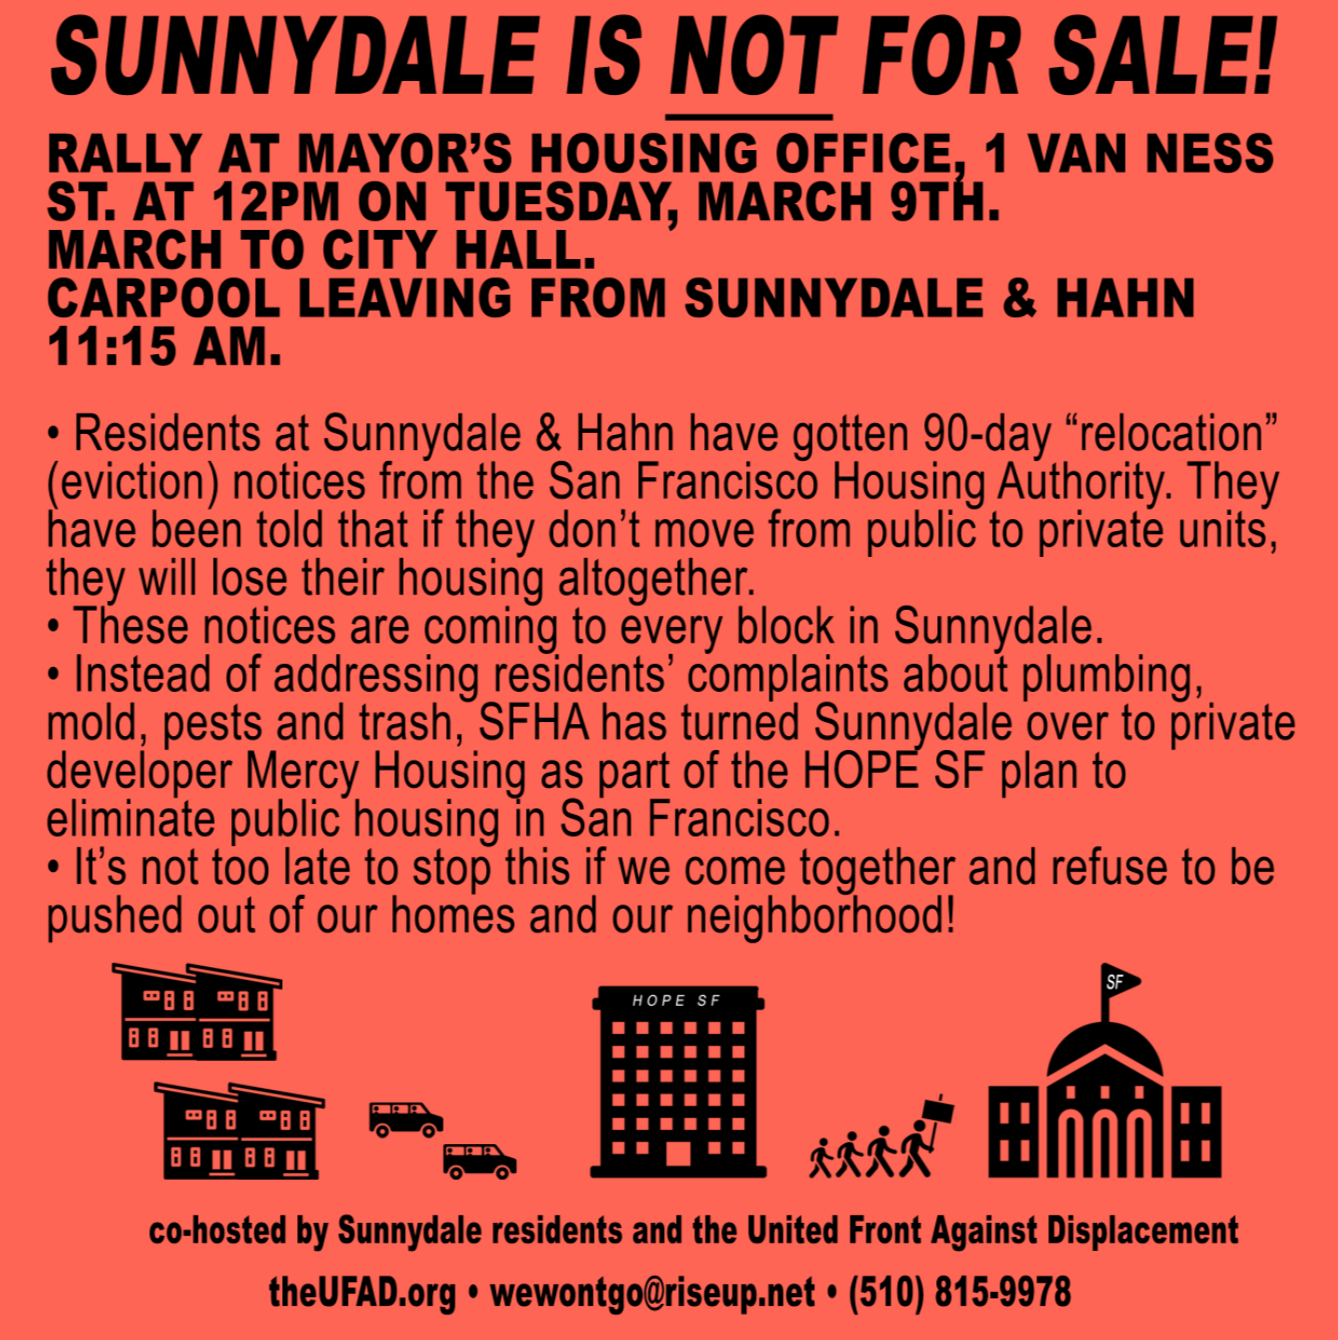 Rally: Sunnydale is NOT for Sale! @ Mayor's Housing Office